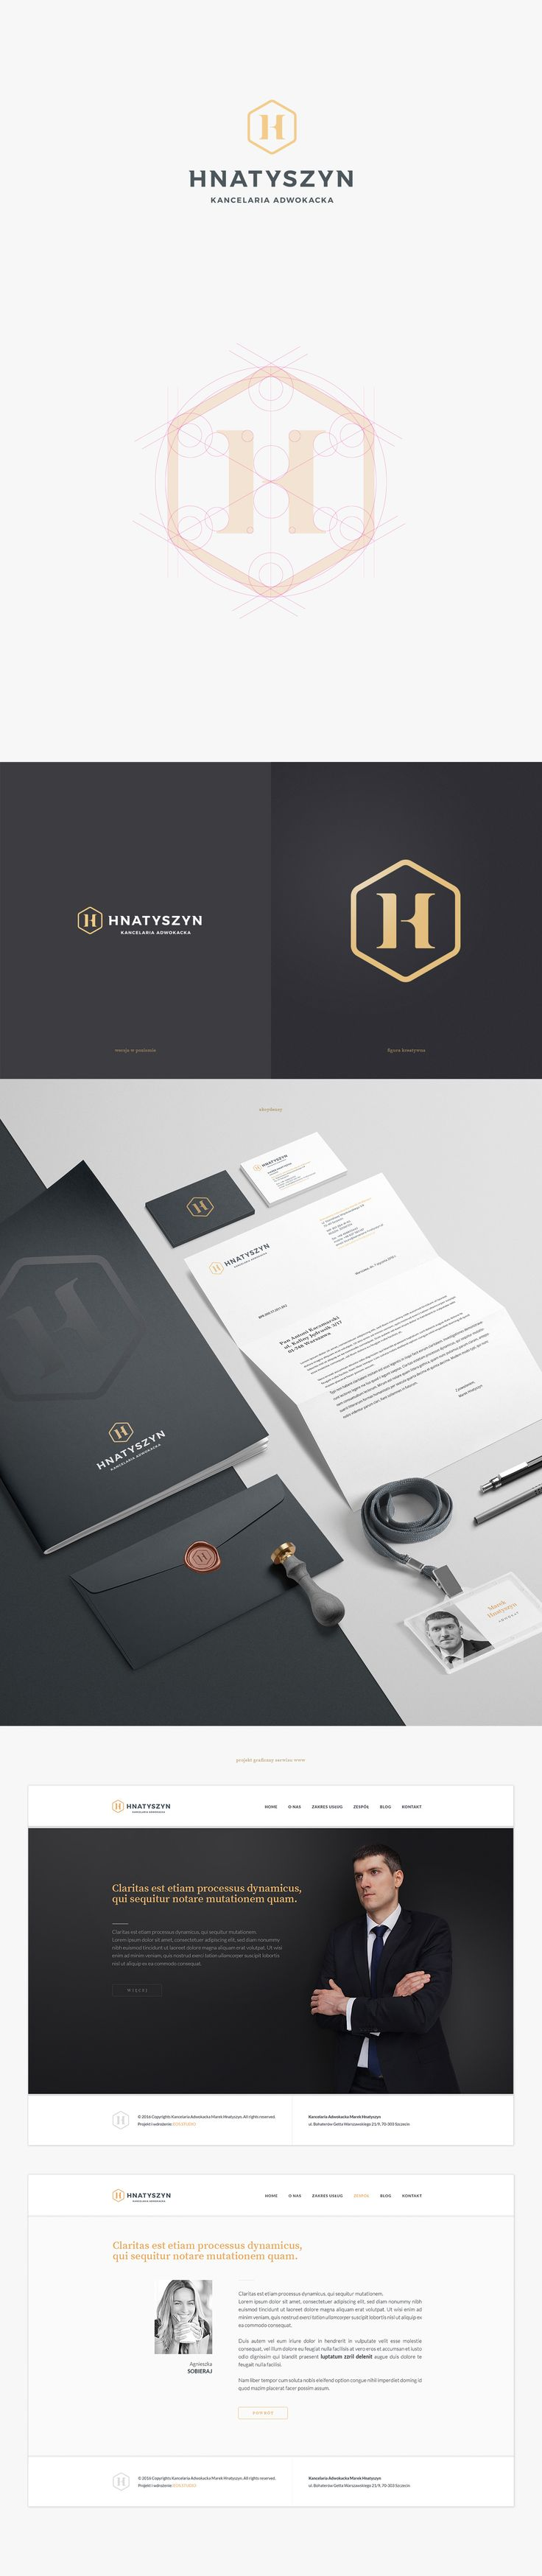 Branding / logo / website for Hnatyszyn Legal Office